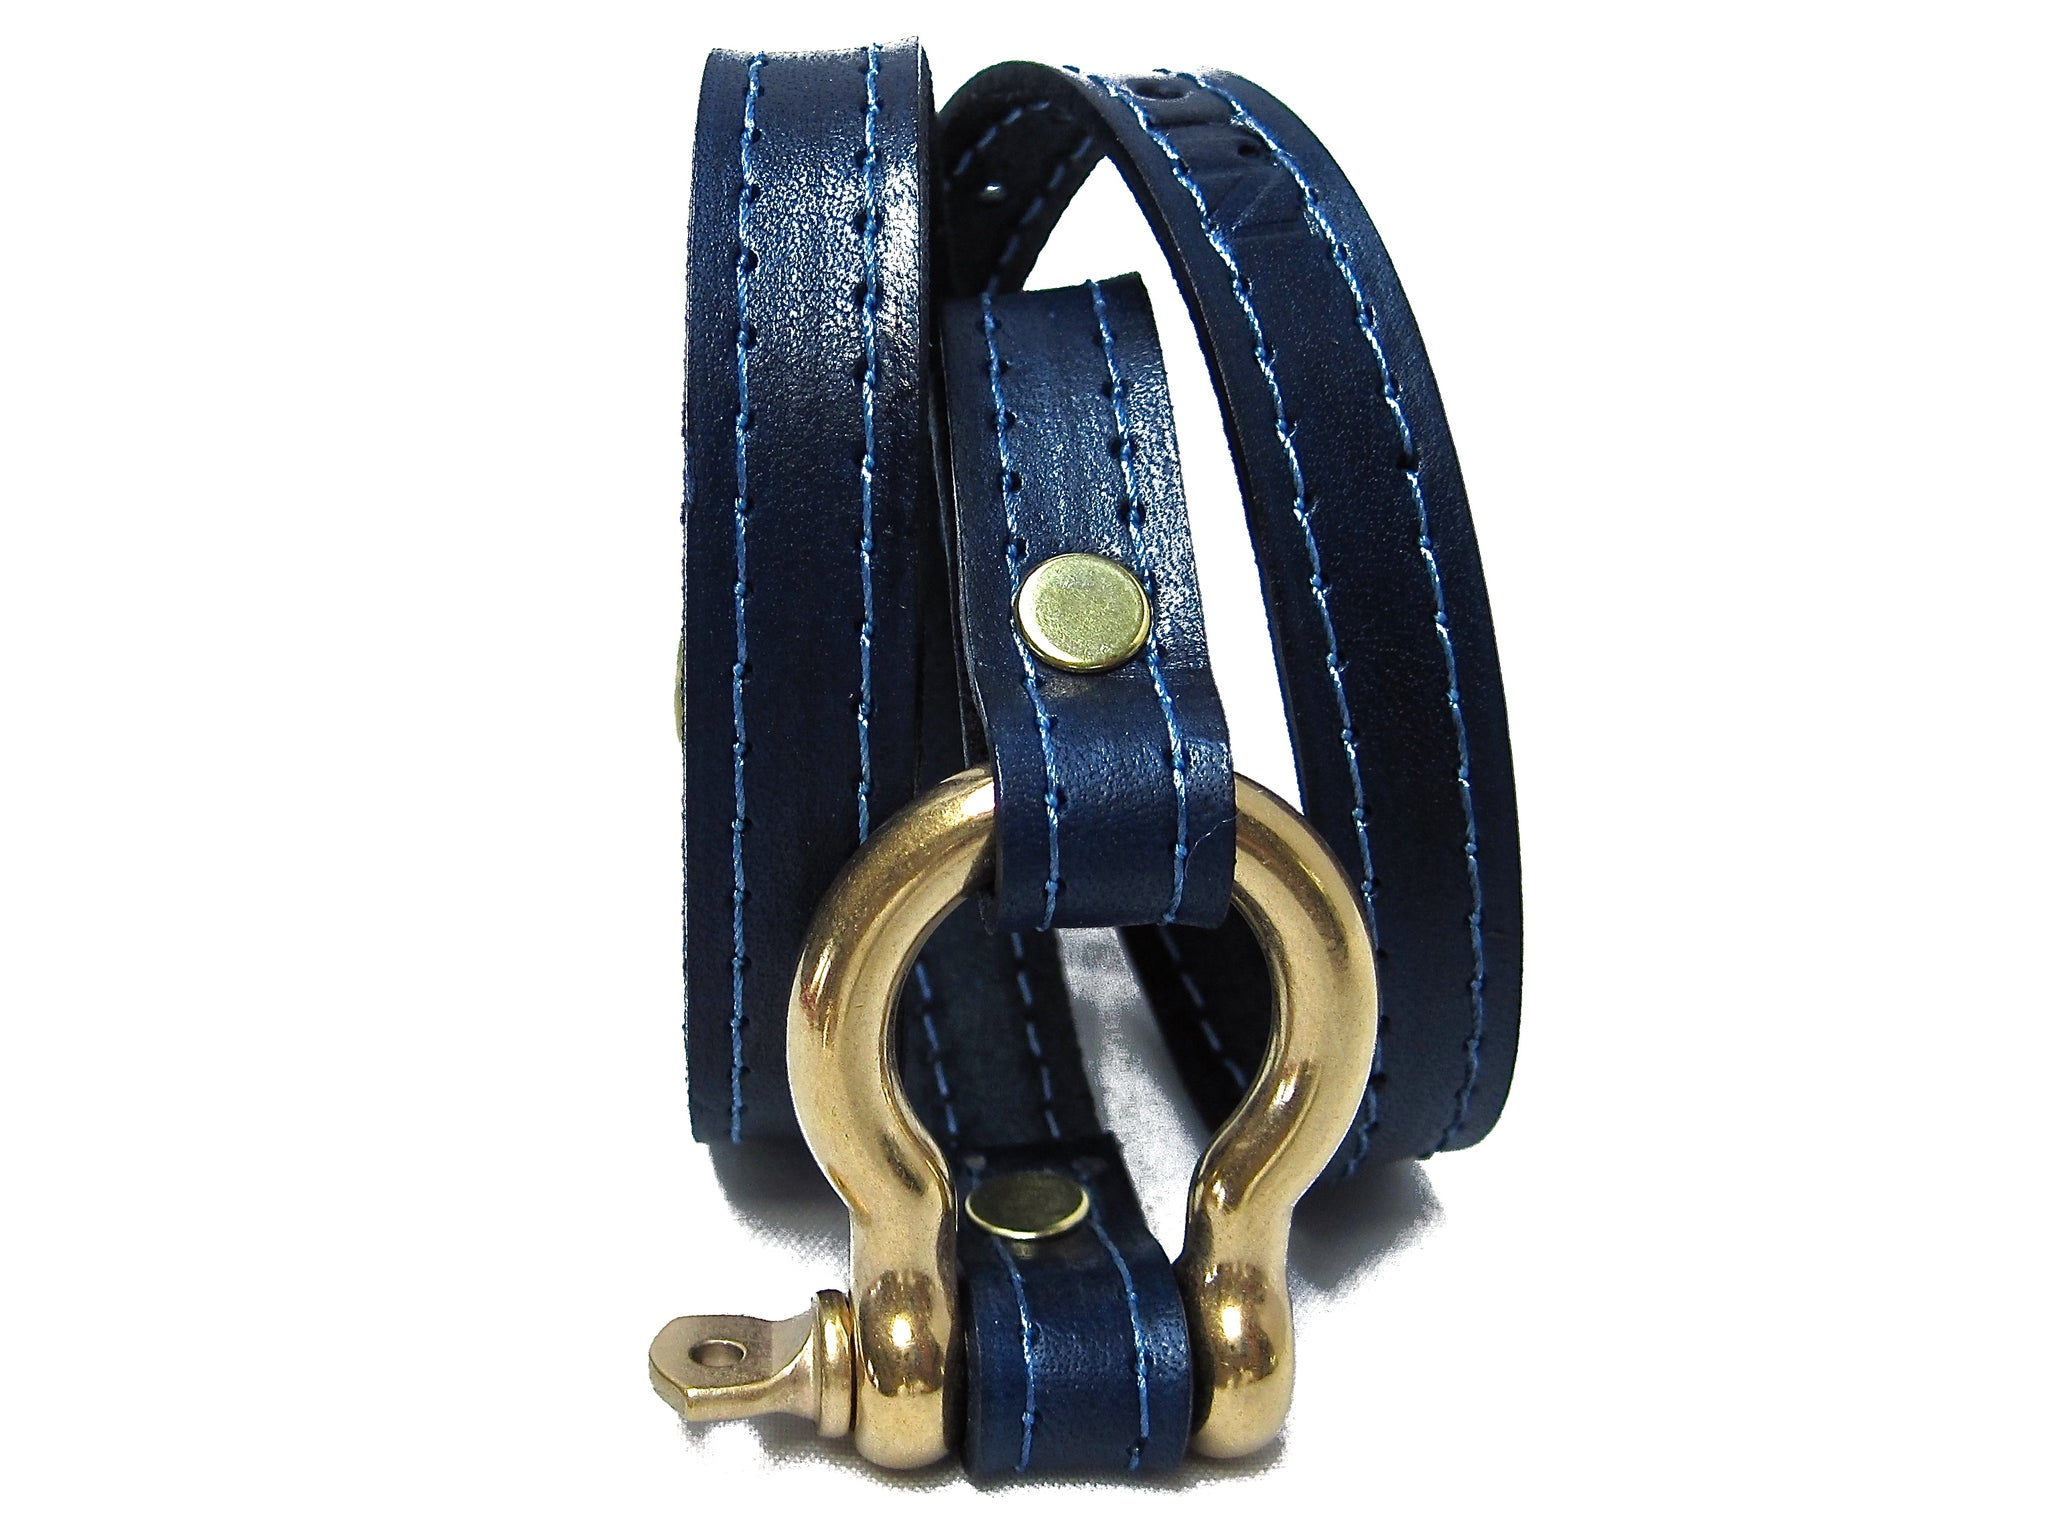 nyet jewelry Signature Gold Shackle Wraparound Bracelet Ultramarine